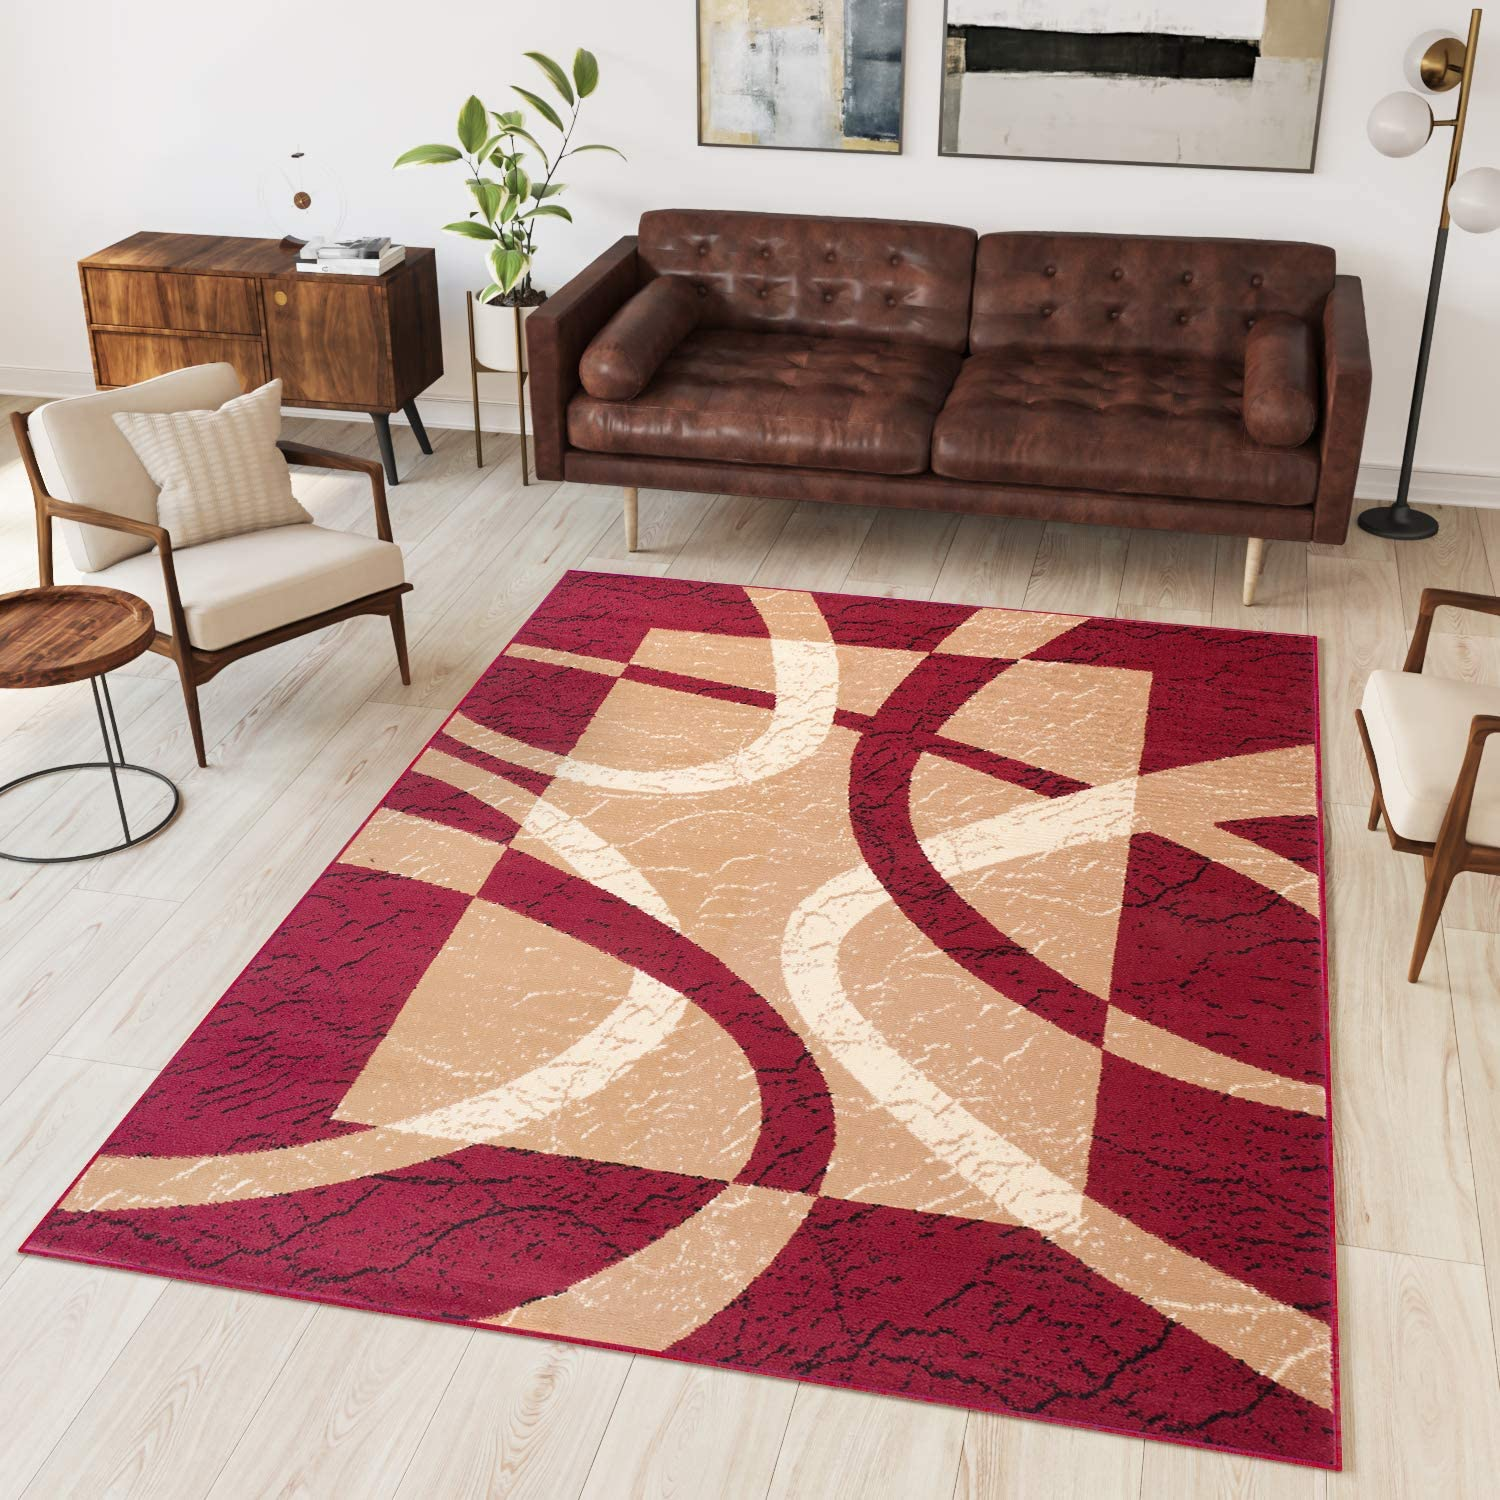 Tapiso Area Rugs For Living Room Bedroom Modern Contemporary Pattern Cream Beige Burgundy Red Durable Carpets Dream Collection Size 250 X 350 Cm 8ft2 X 11ft6 Amazon Co Uk Kitchen Home